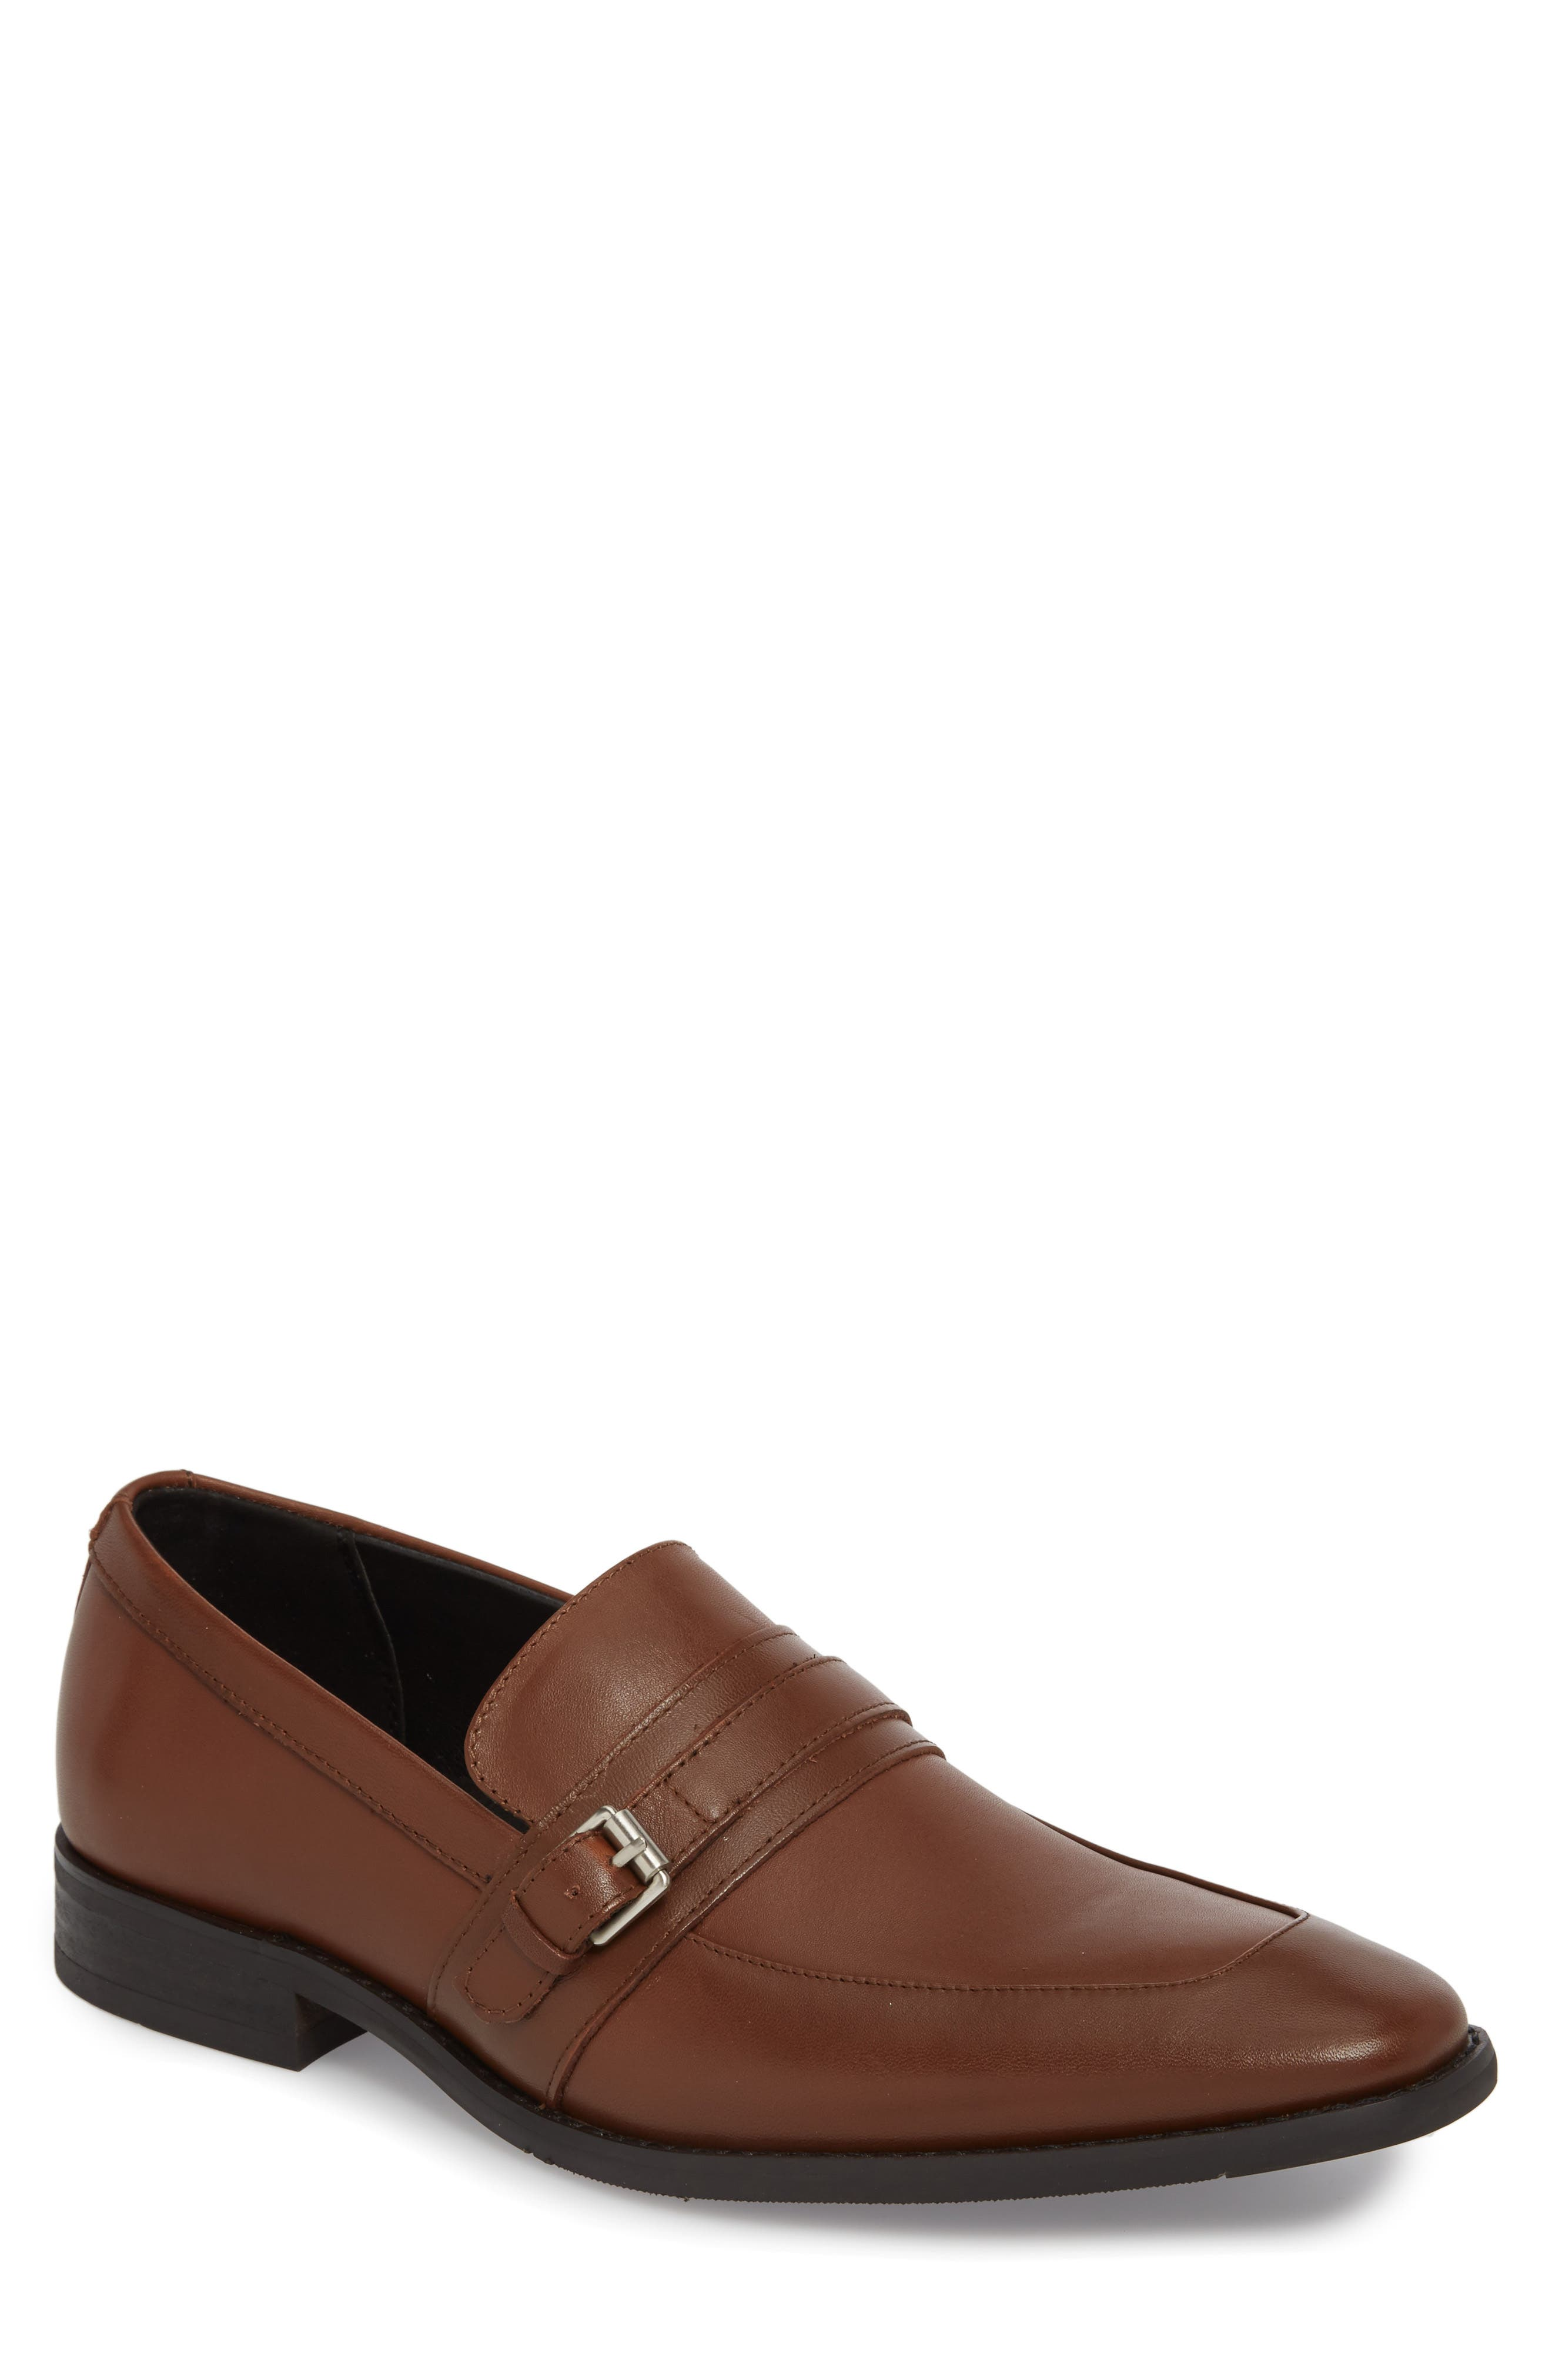 Reyes Loafer,                         Main,                         color, Tan Leather